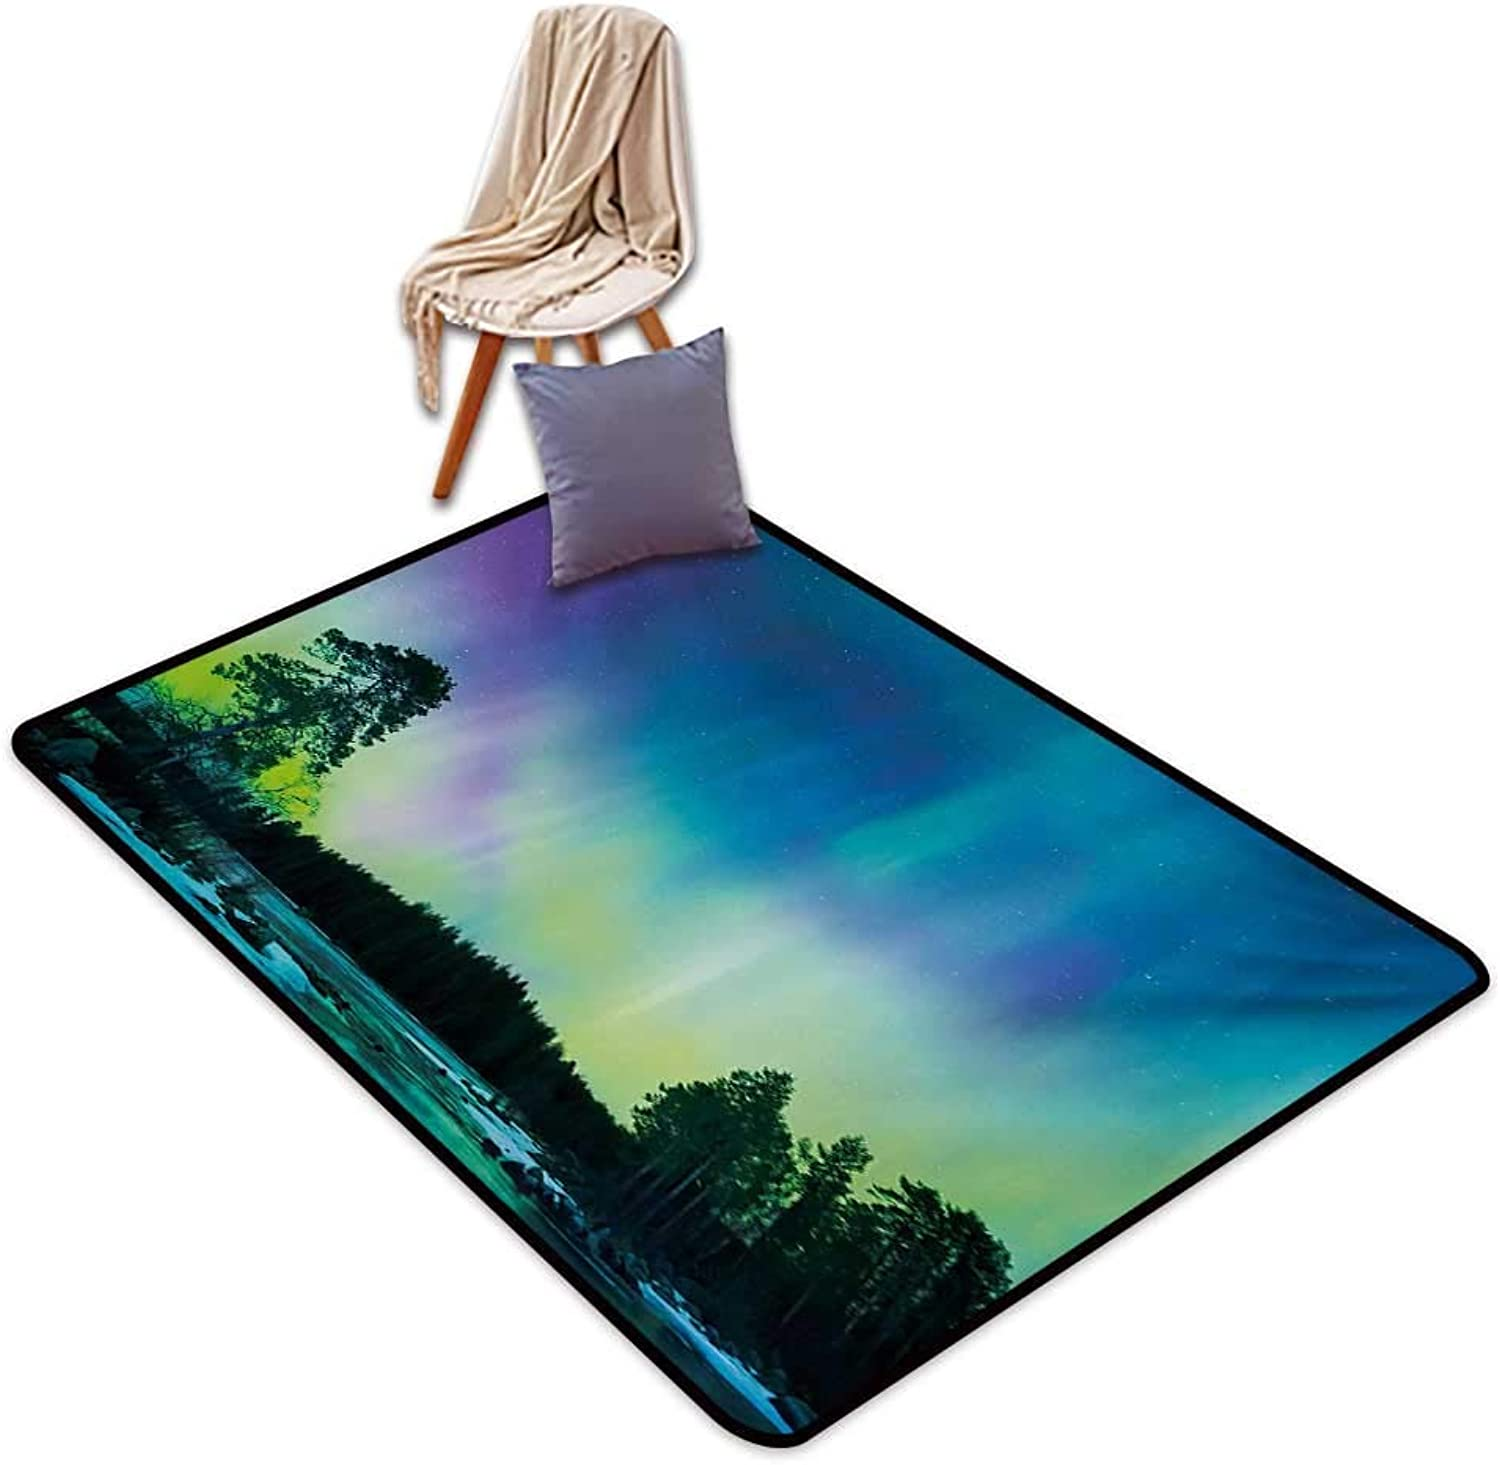 Aurora Borealis Entrance Door mat Sky Over Lake Surrounded Forest Woods Hemisphere Print Water Absorption, Anti-Skid and Oil Proof 48  Wx59 L purple bluee Lime Green Purple